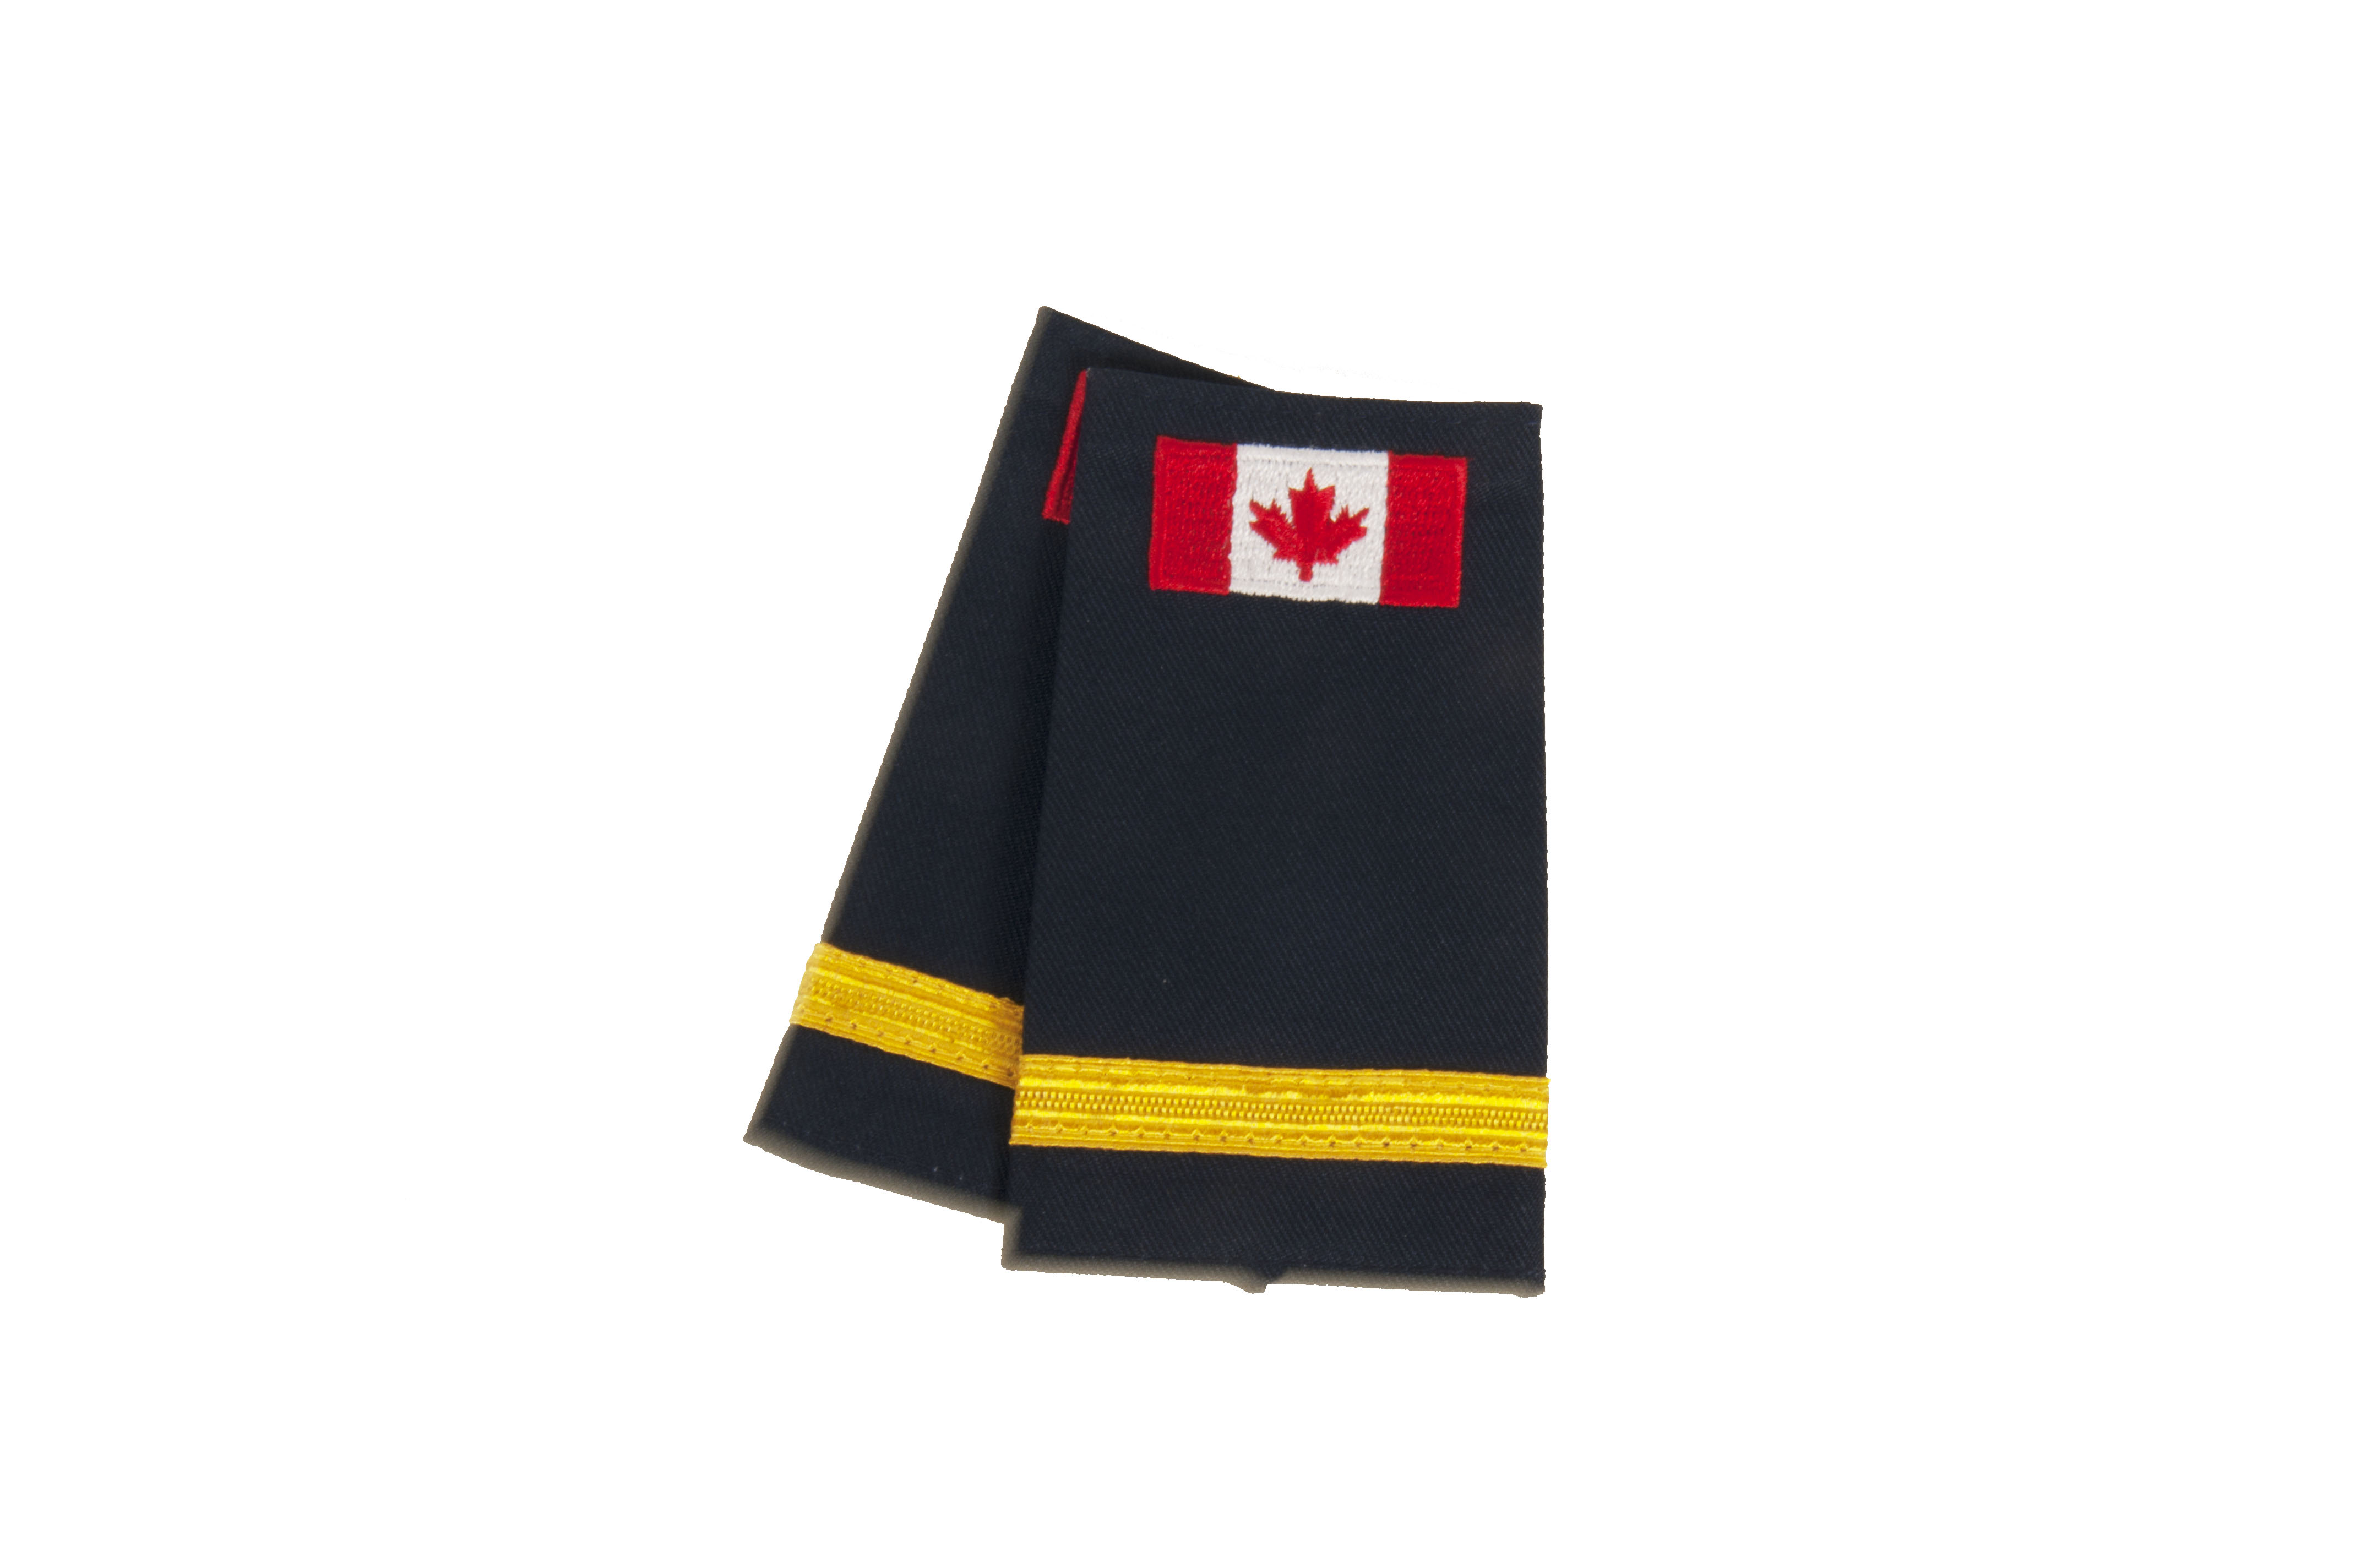 Lieutenant Slip-On with Canadian Flag (No Text)